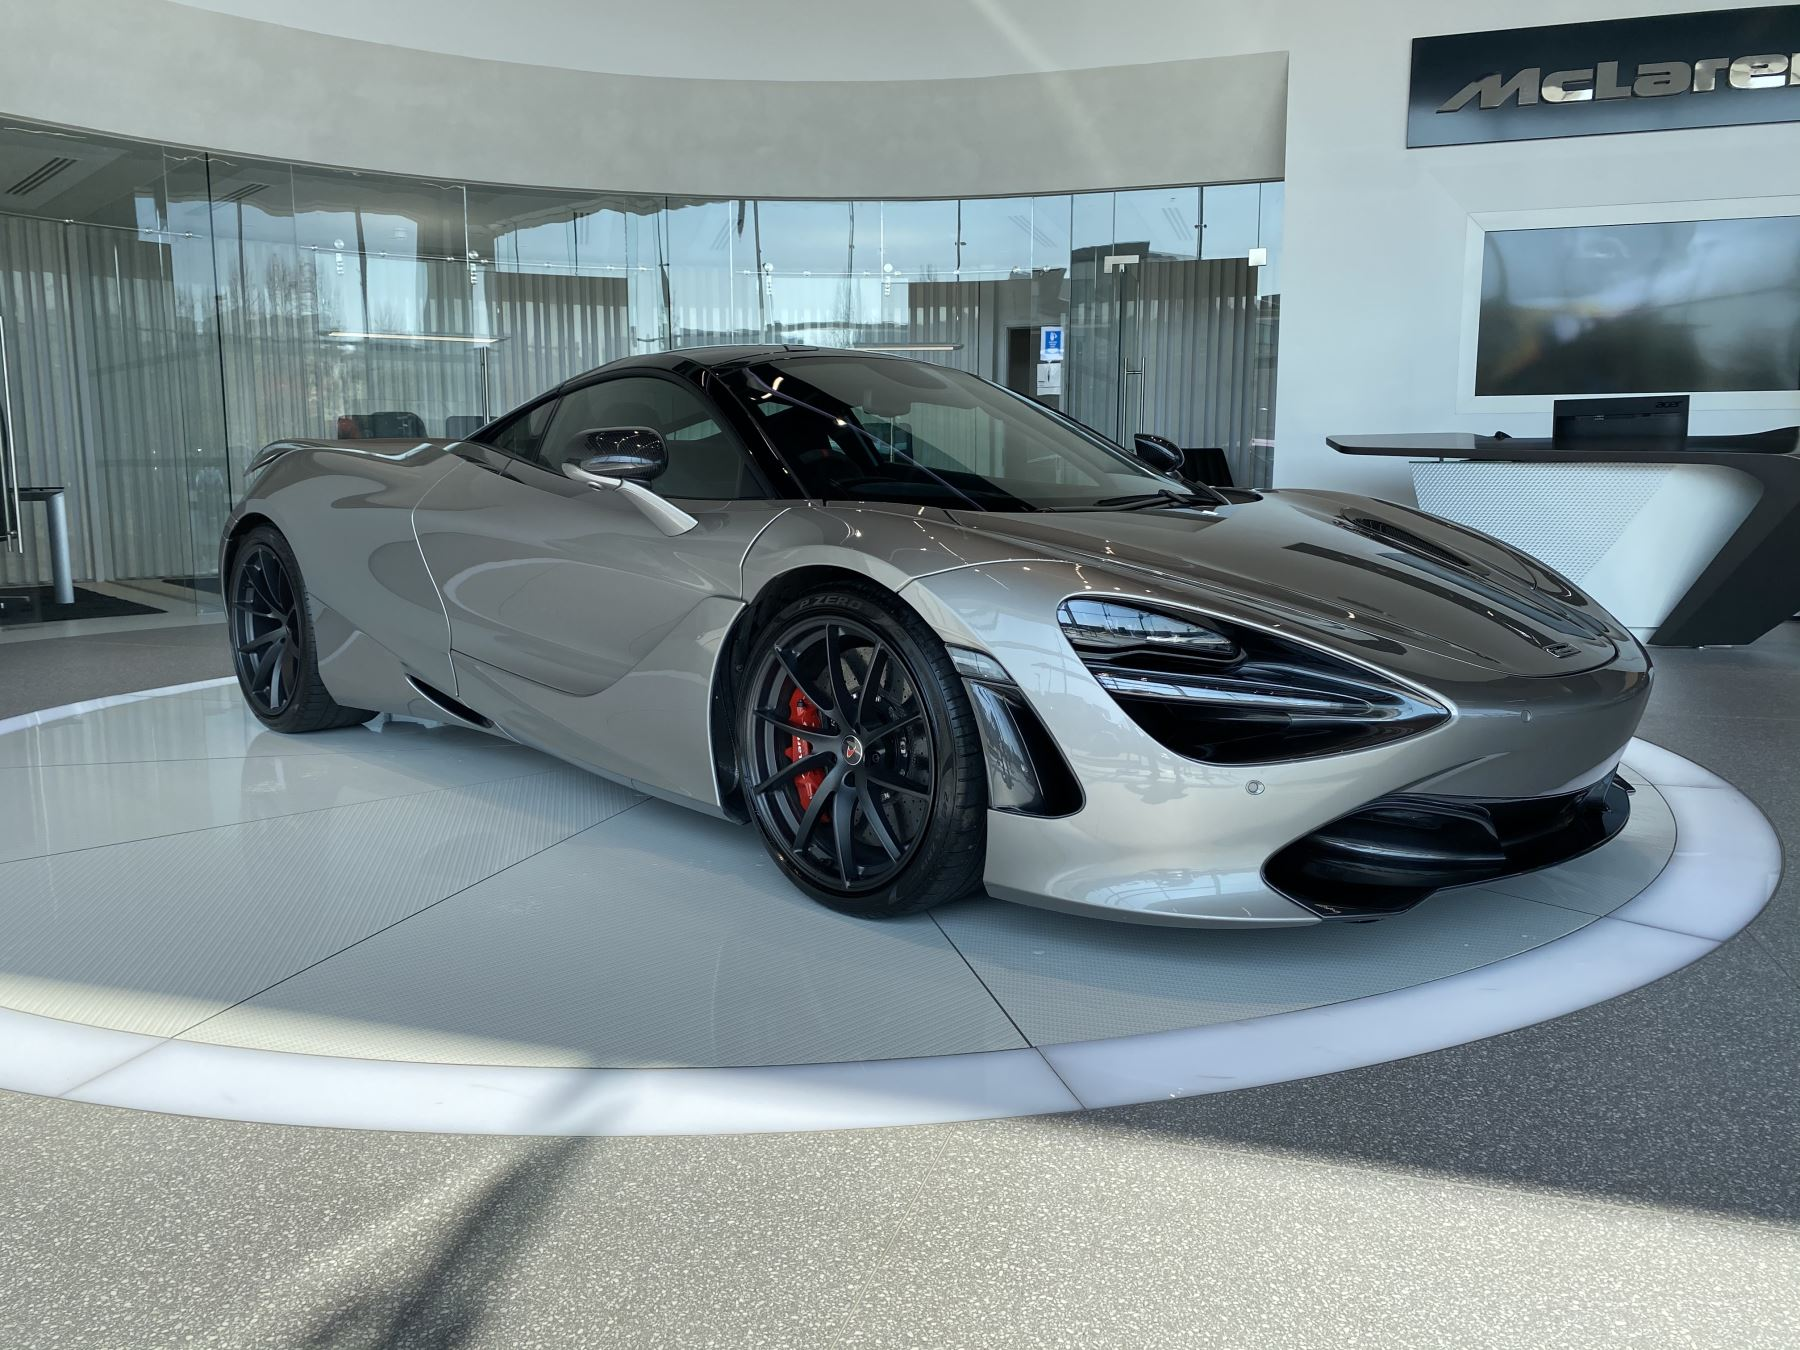 McLaren 720S 4.V8 2 DR PERFORMANCE 4.0 Automatic 2 door Coupe (2019) image